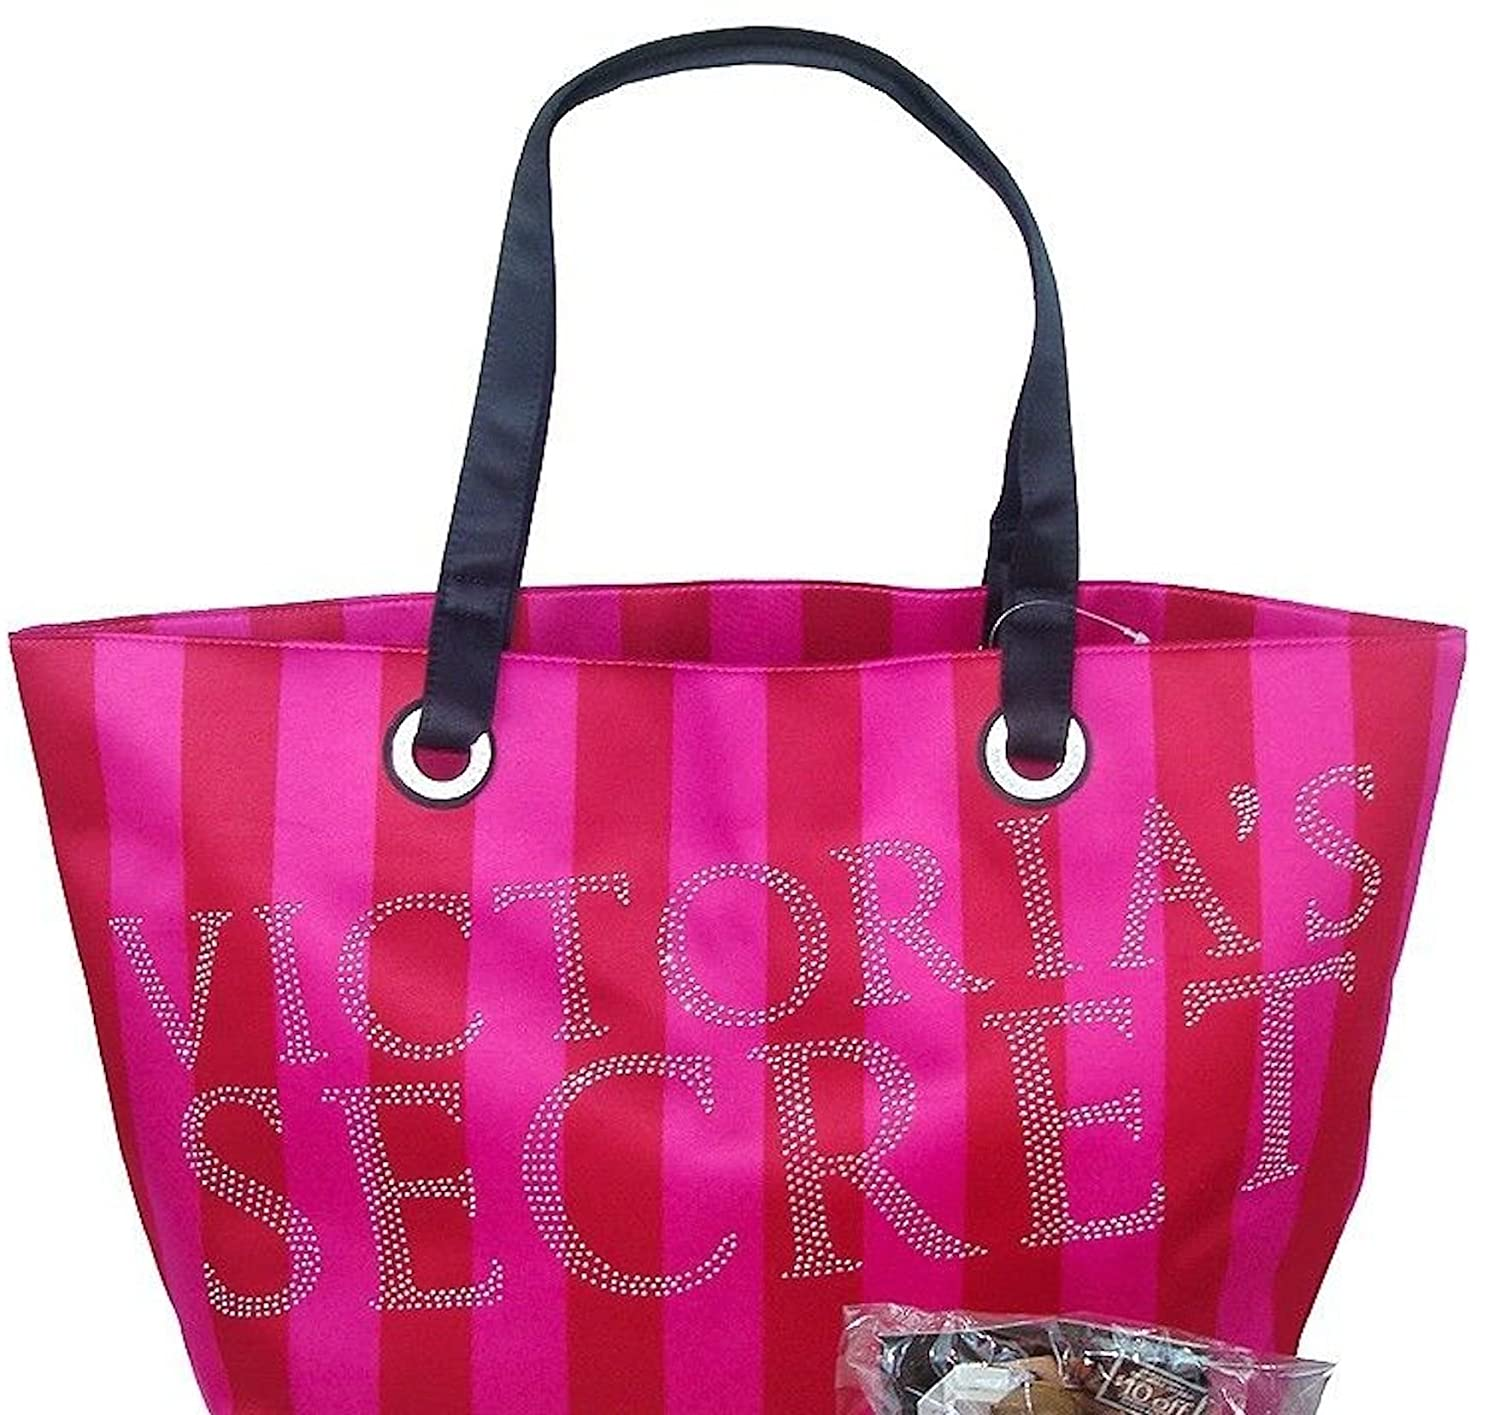 Victoria's Secret Pink Red Stripes Silver Studded Bling Tote Bag Limited Edition